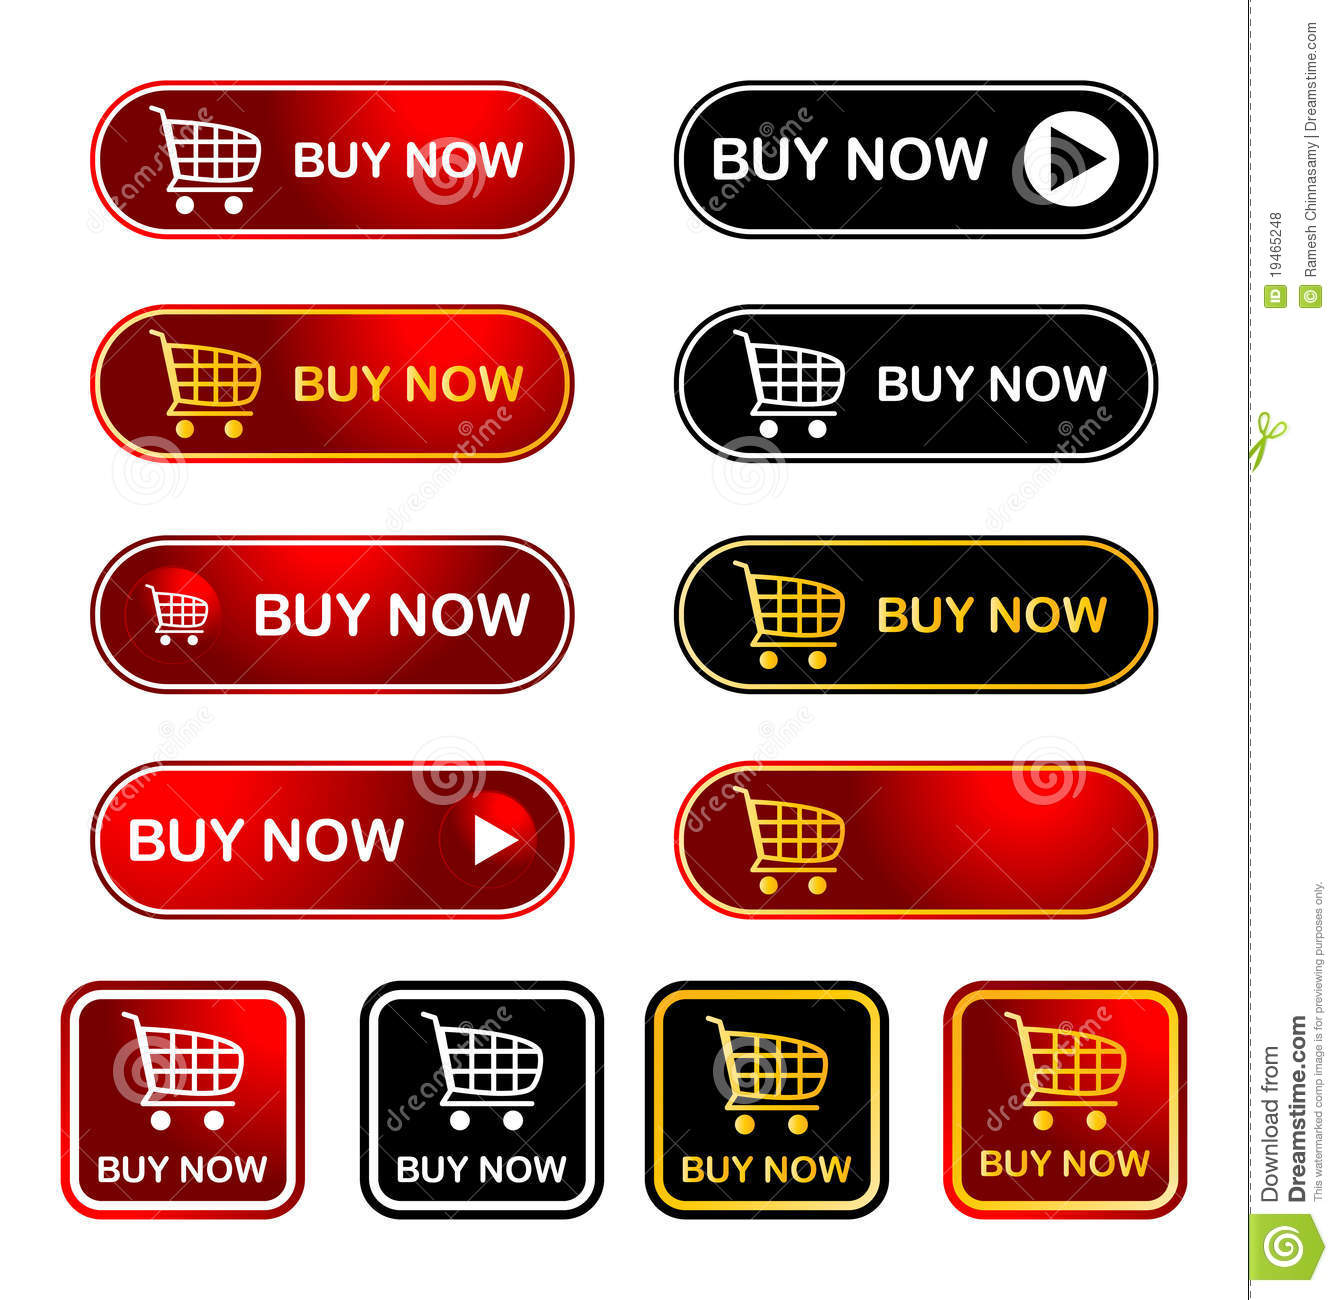 Buy Now Button Stock Photo - Image: 13898570